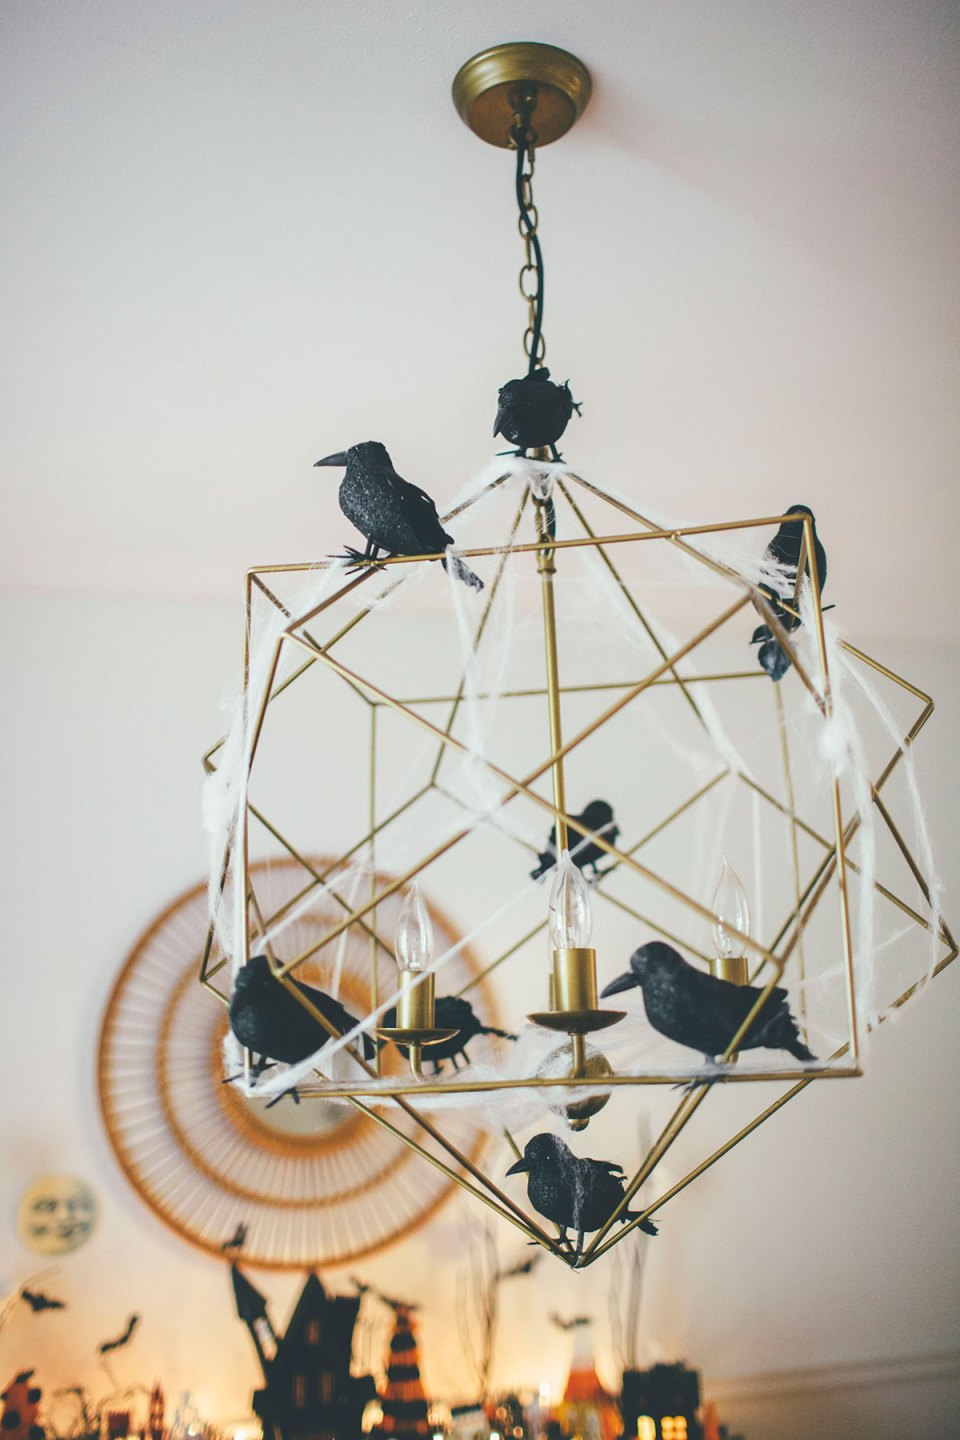 Modern Gold Chandelier with Crows for Halloween